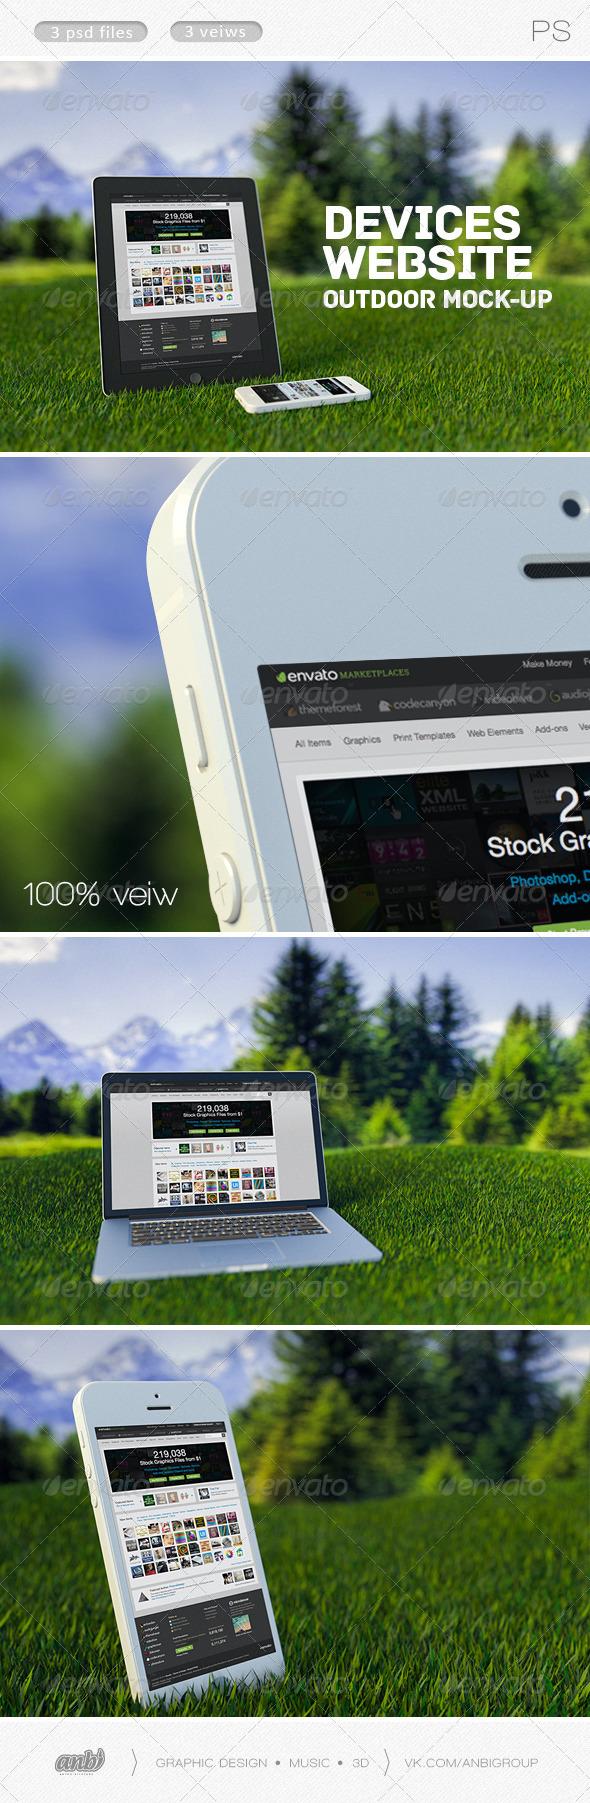 GraphicRiver Devices website outdoor Mock-up 7181480